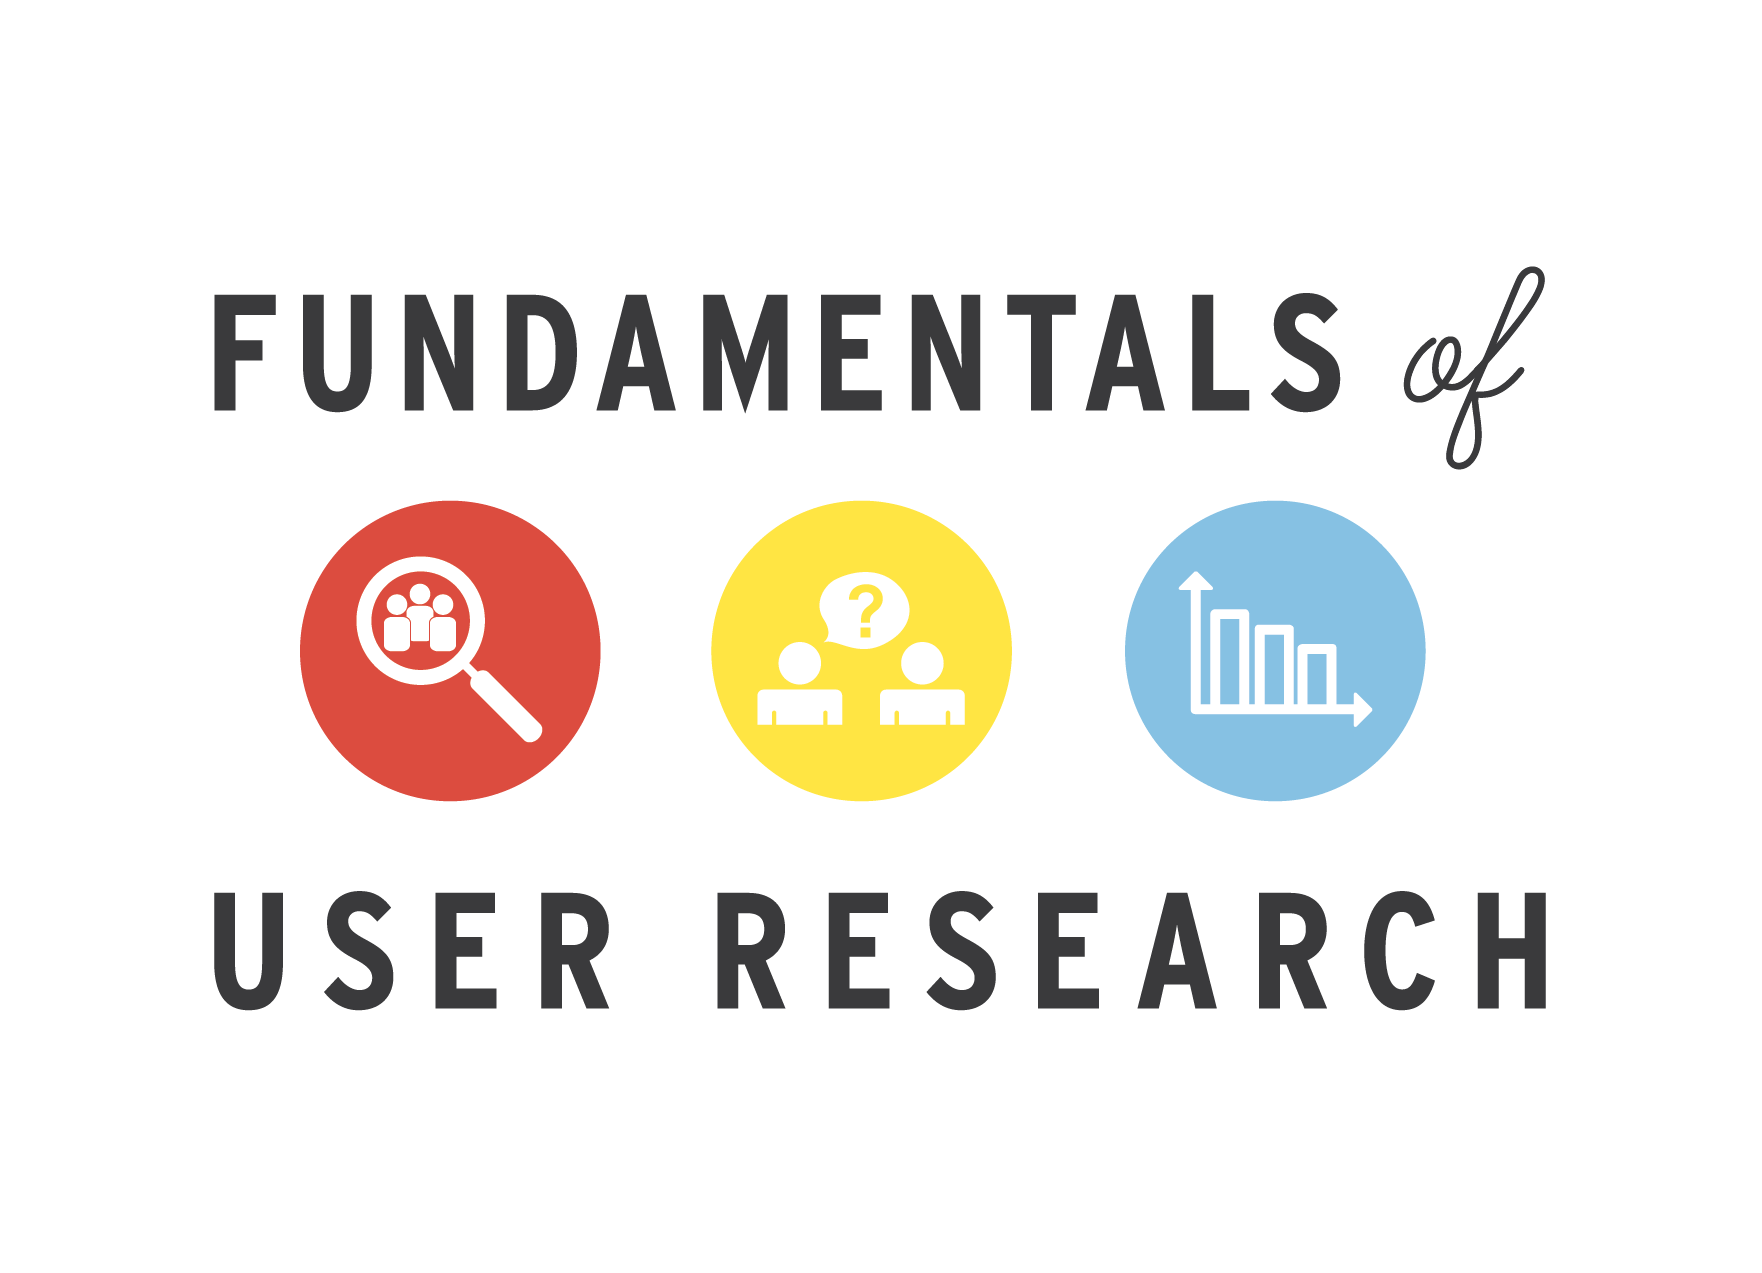 Research: User Research